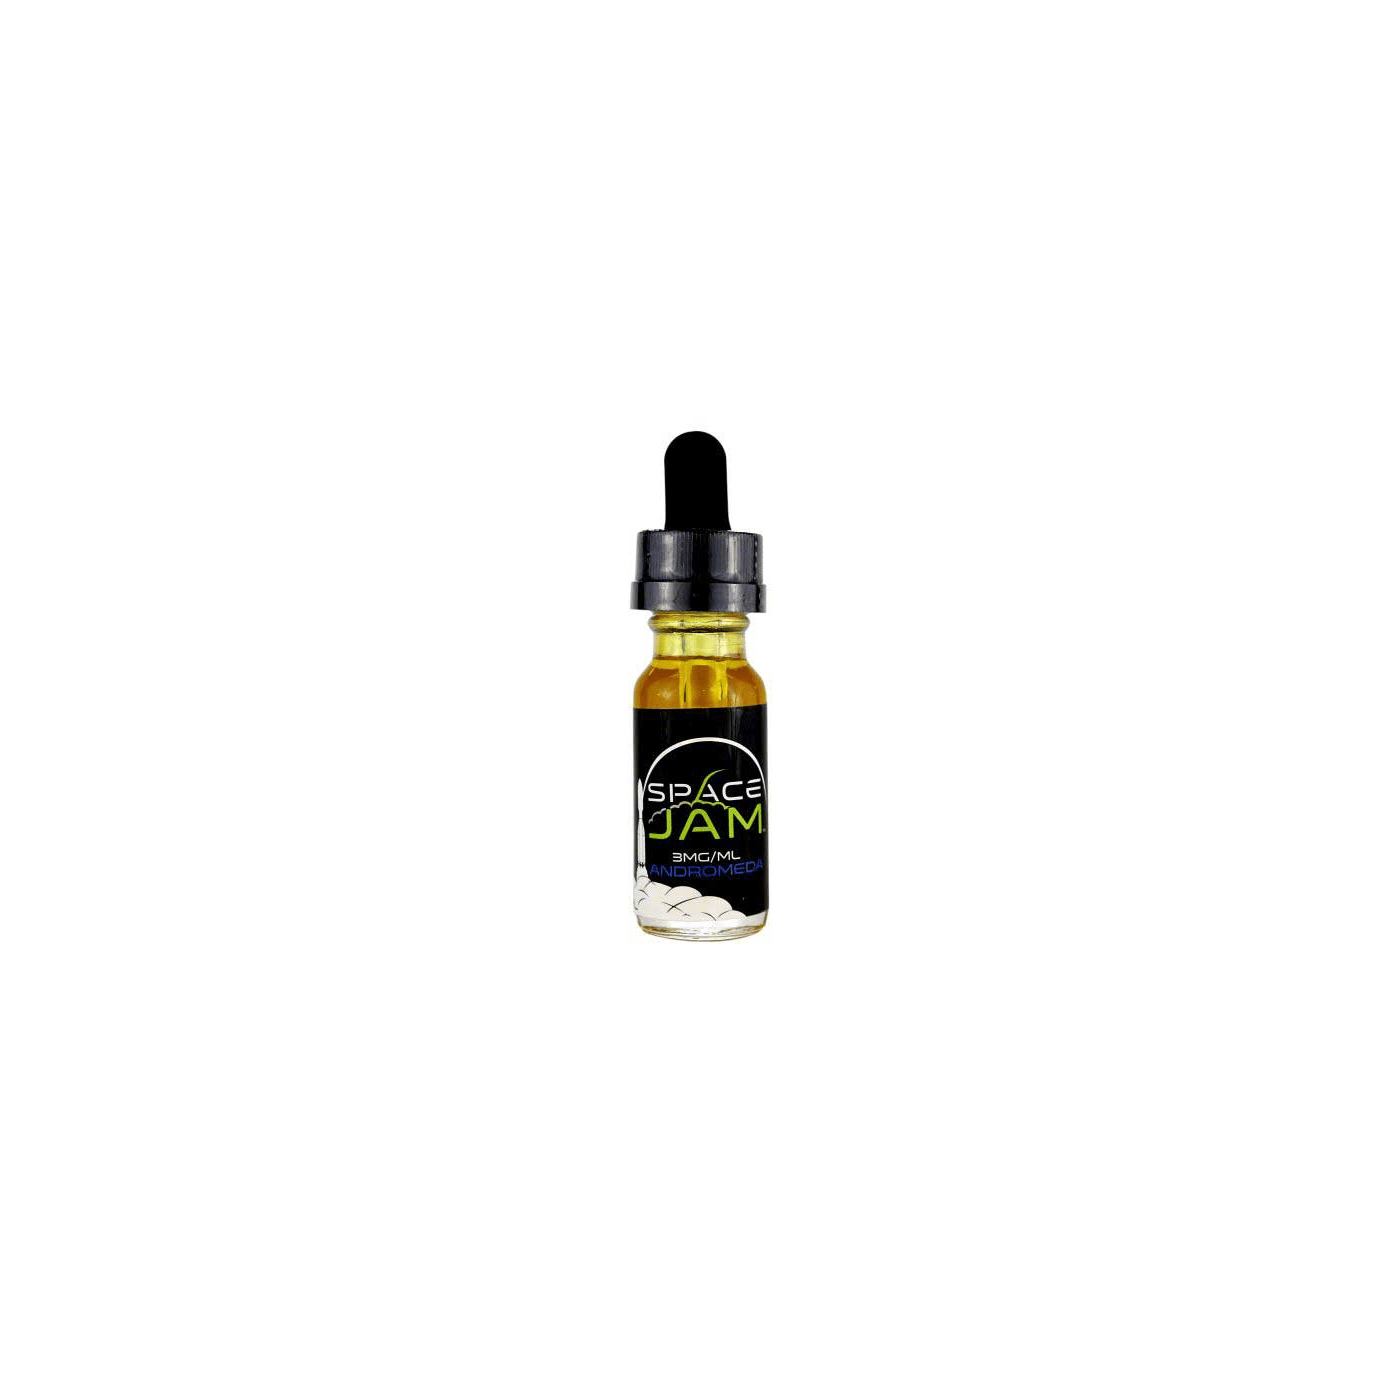 Space Jam Andromeda - 15 ML